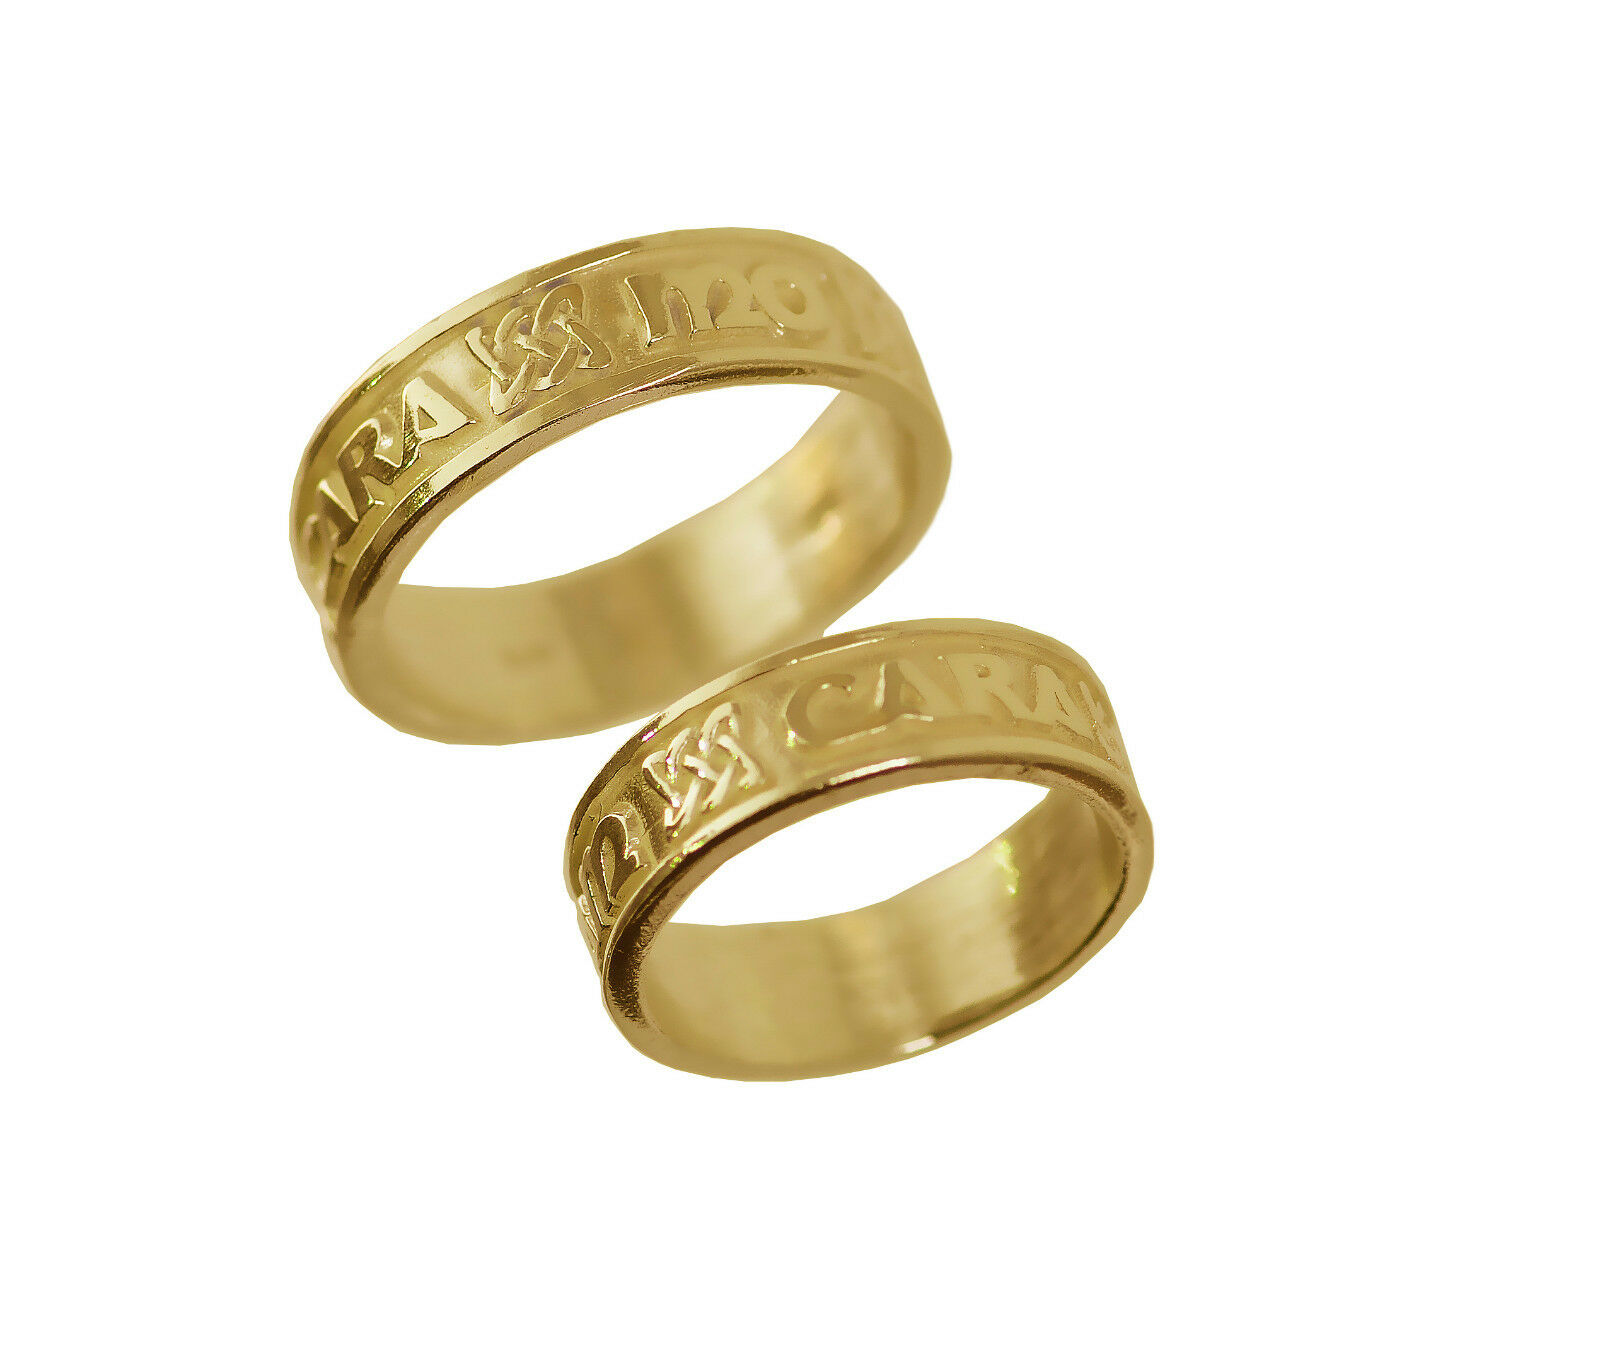 My Soul mate 24kt gold plated Celtic Infinity knot ring His and Hers Jewelry set